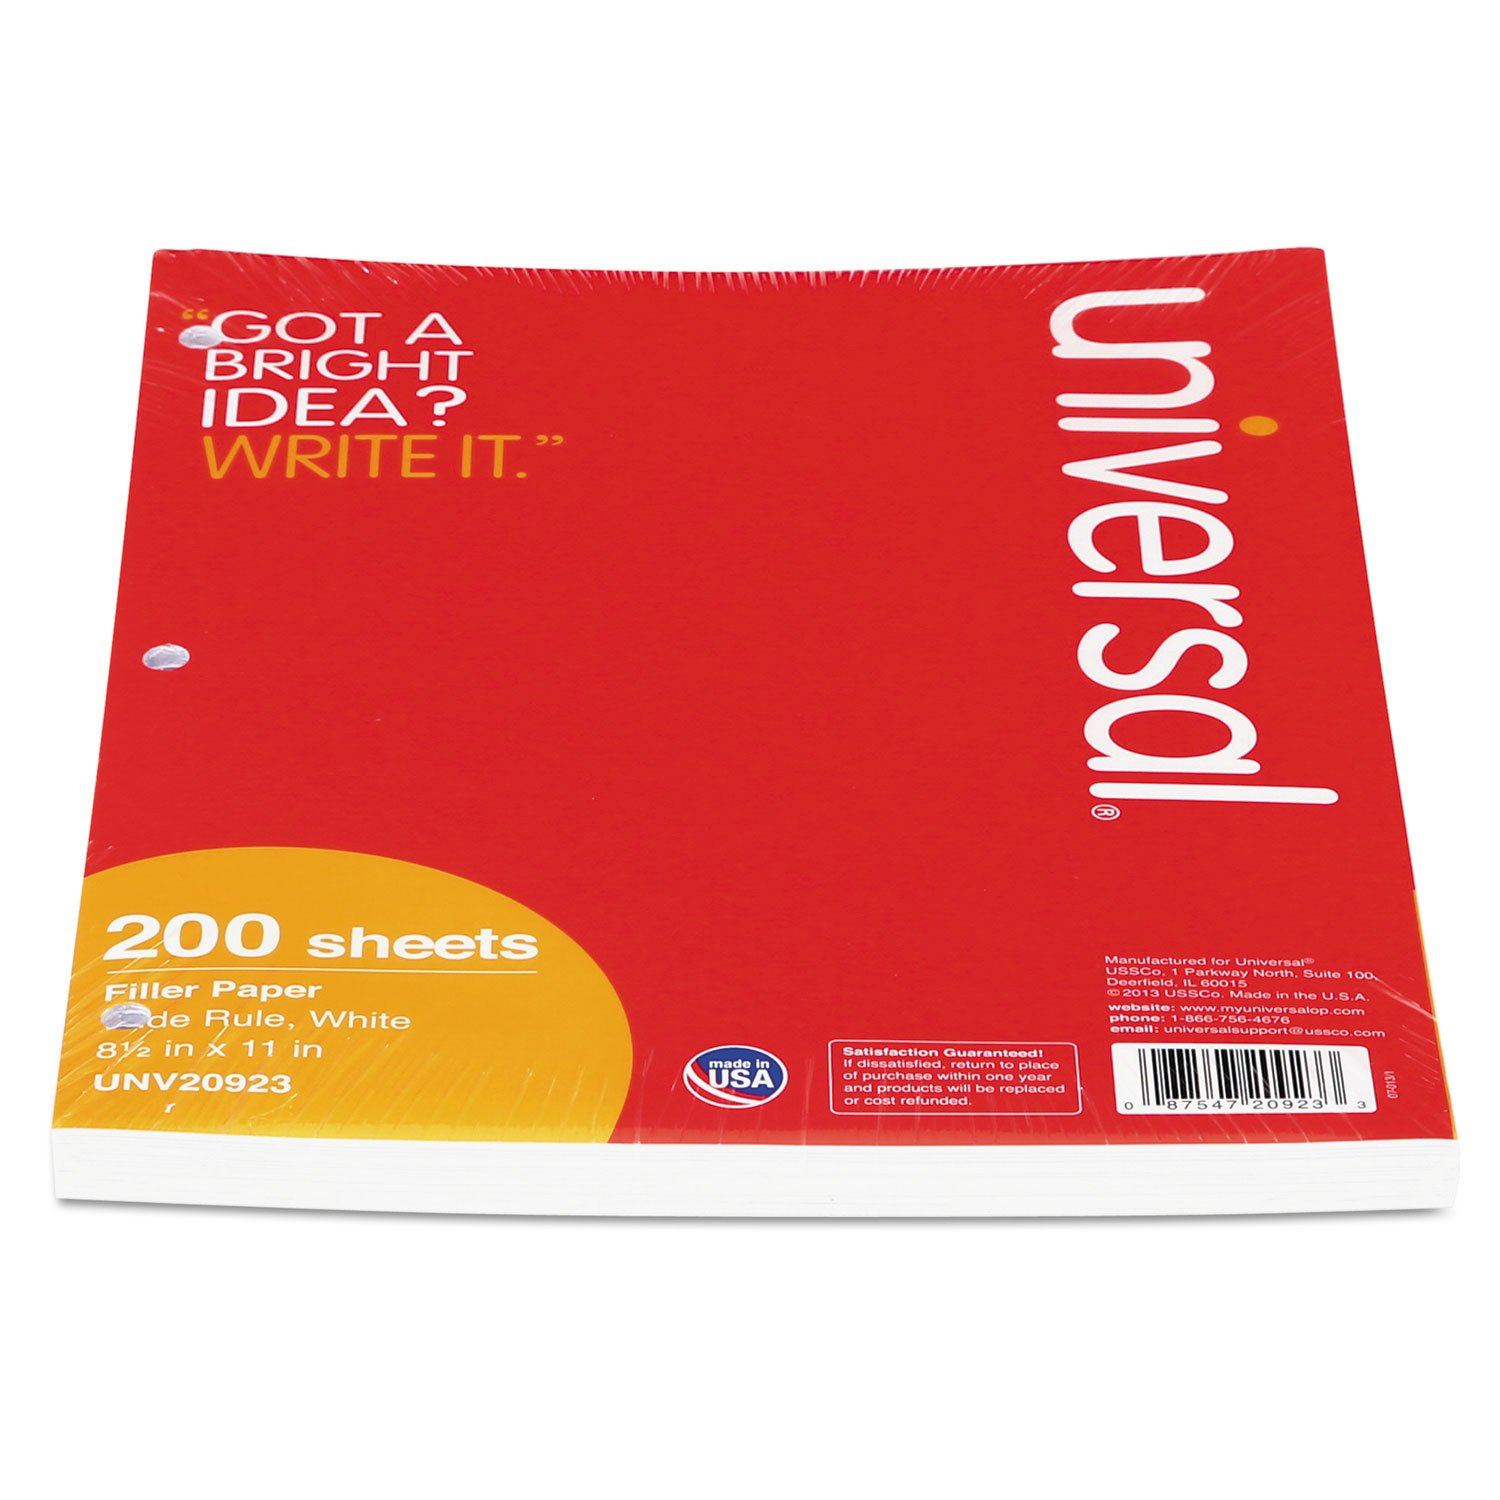 Universal 20923 Filler Paper, 8 1/2 x 11, Wide Rule, White, 200 Sheets/Pack